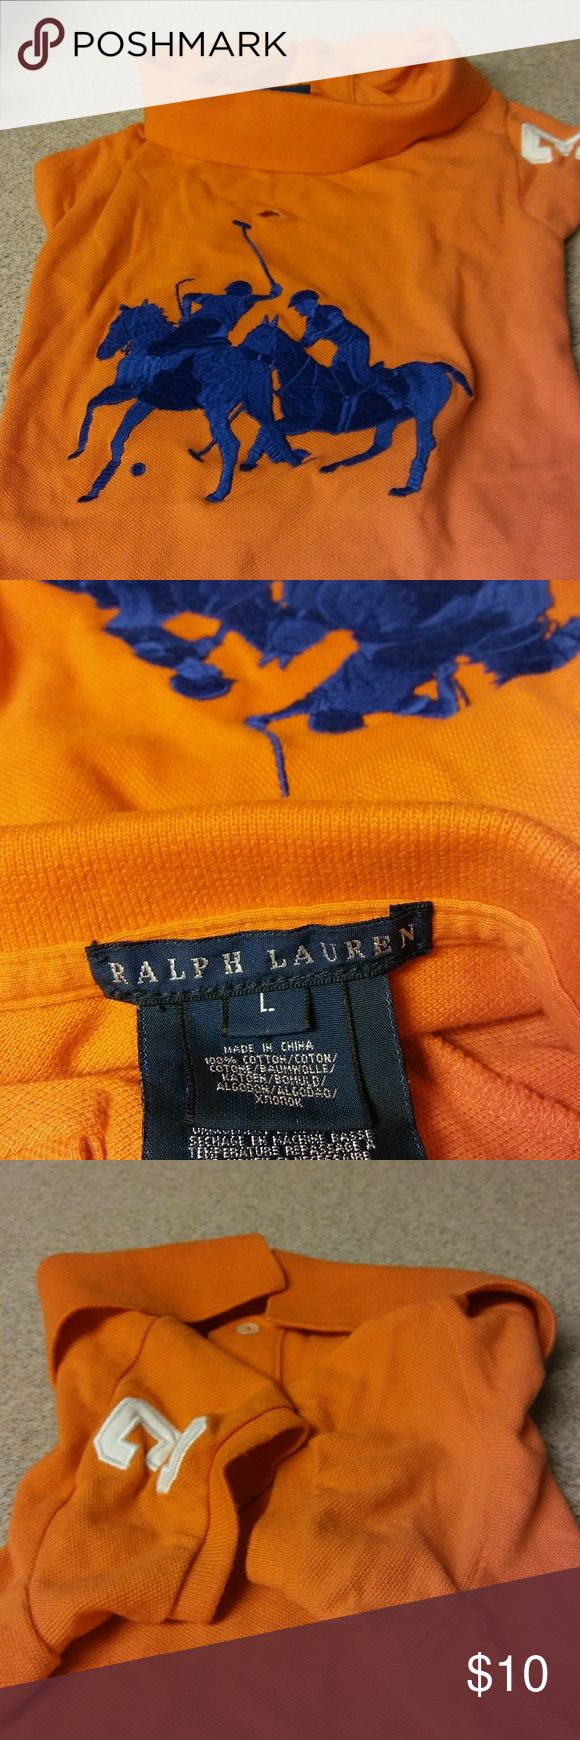 Dog shirt Designer ralph Lauren big horse doggie shirt size large,orange.clean odor free.comes from smokefree clean home.thanks for looking. Ralph Lauren Other